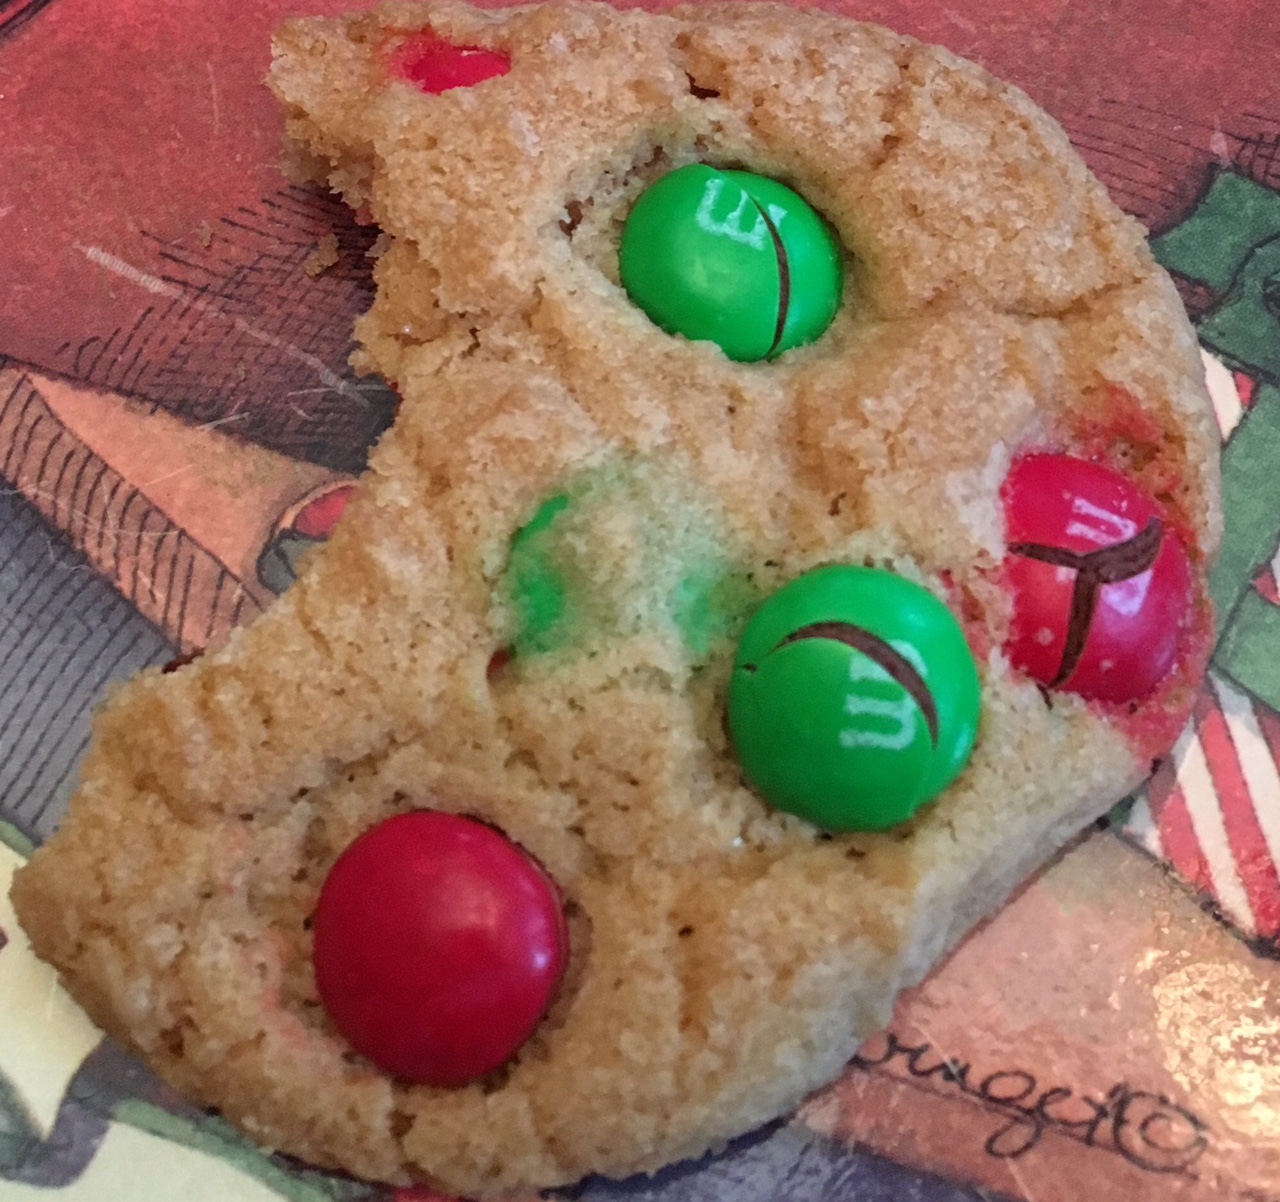 Scrumptious holiday cookies are the highlight of the afternoon at Aysgarth Station B&B.